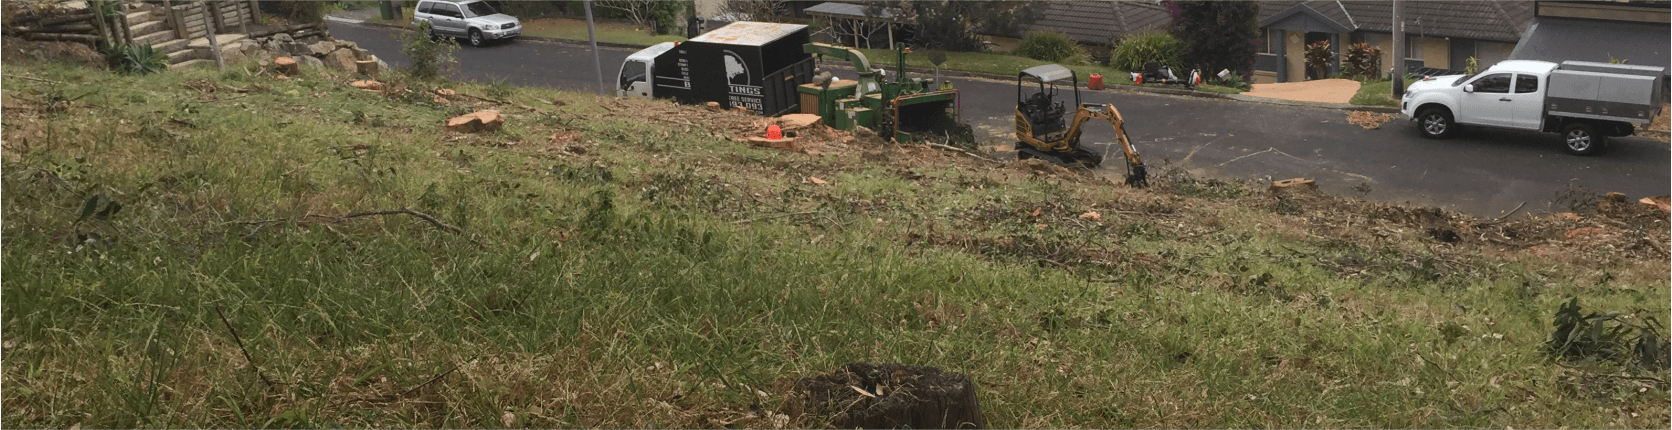 Land Clearing Hunter Valley | Ben Hastings Tree Service Call 0452 393 093